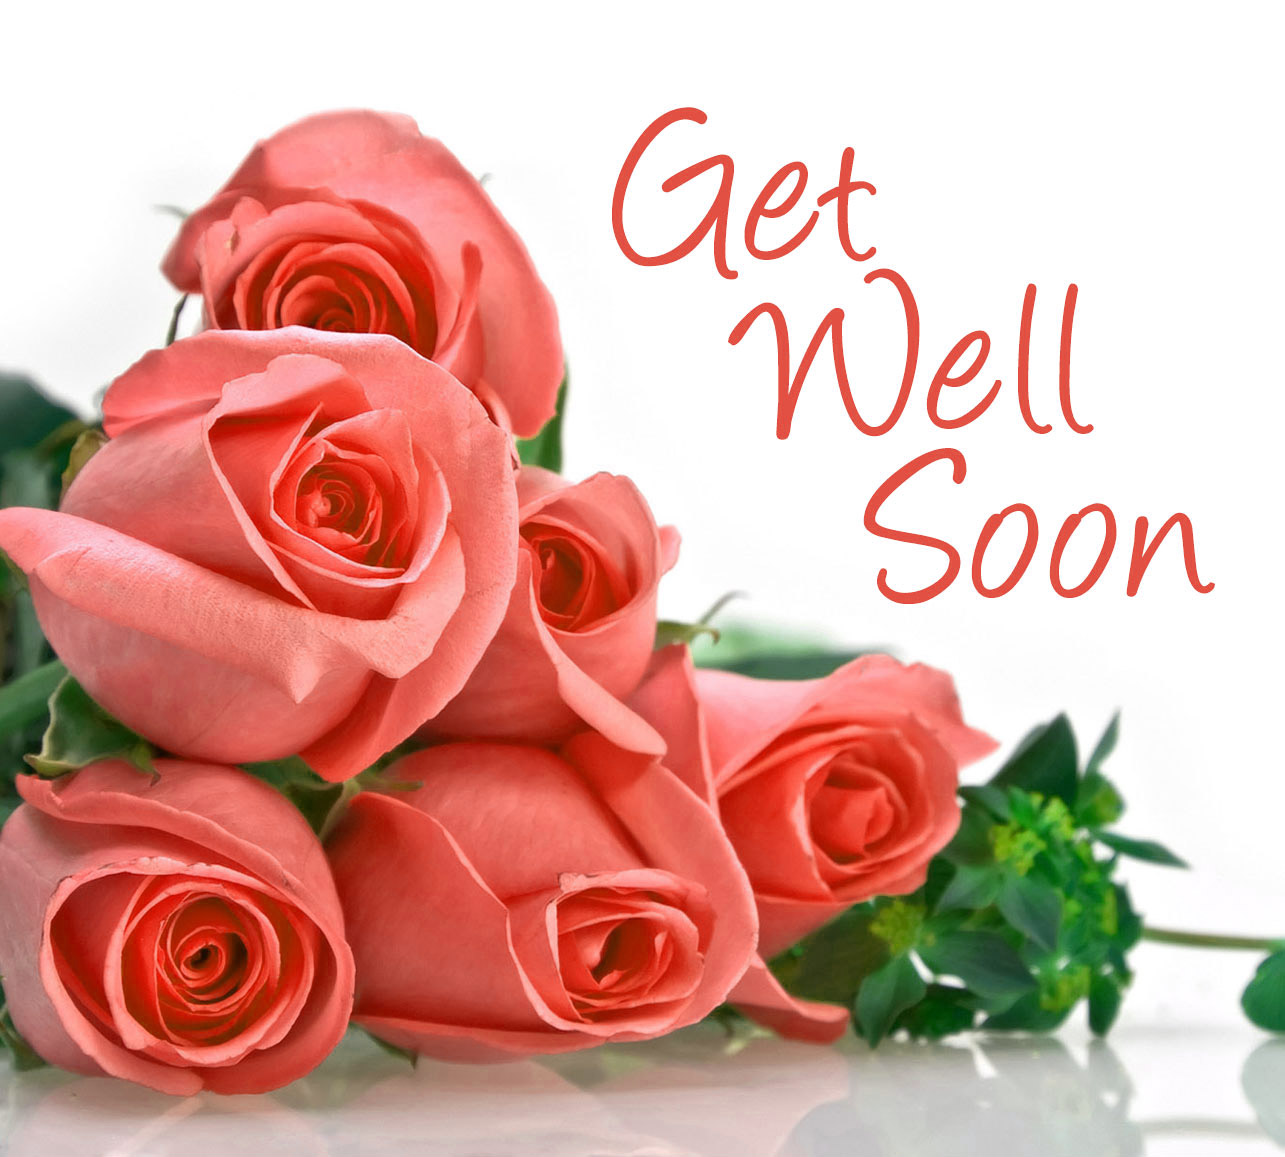 Get Well Soon Images for daughter lover Best Friend hd for Whatsapp Photo Pictures Pics HD Download